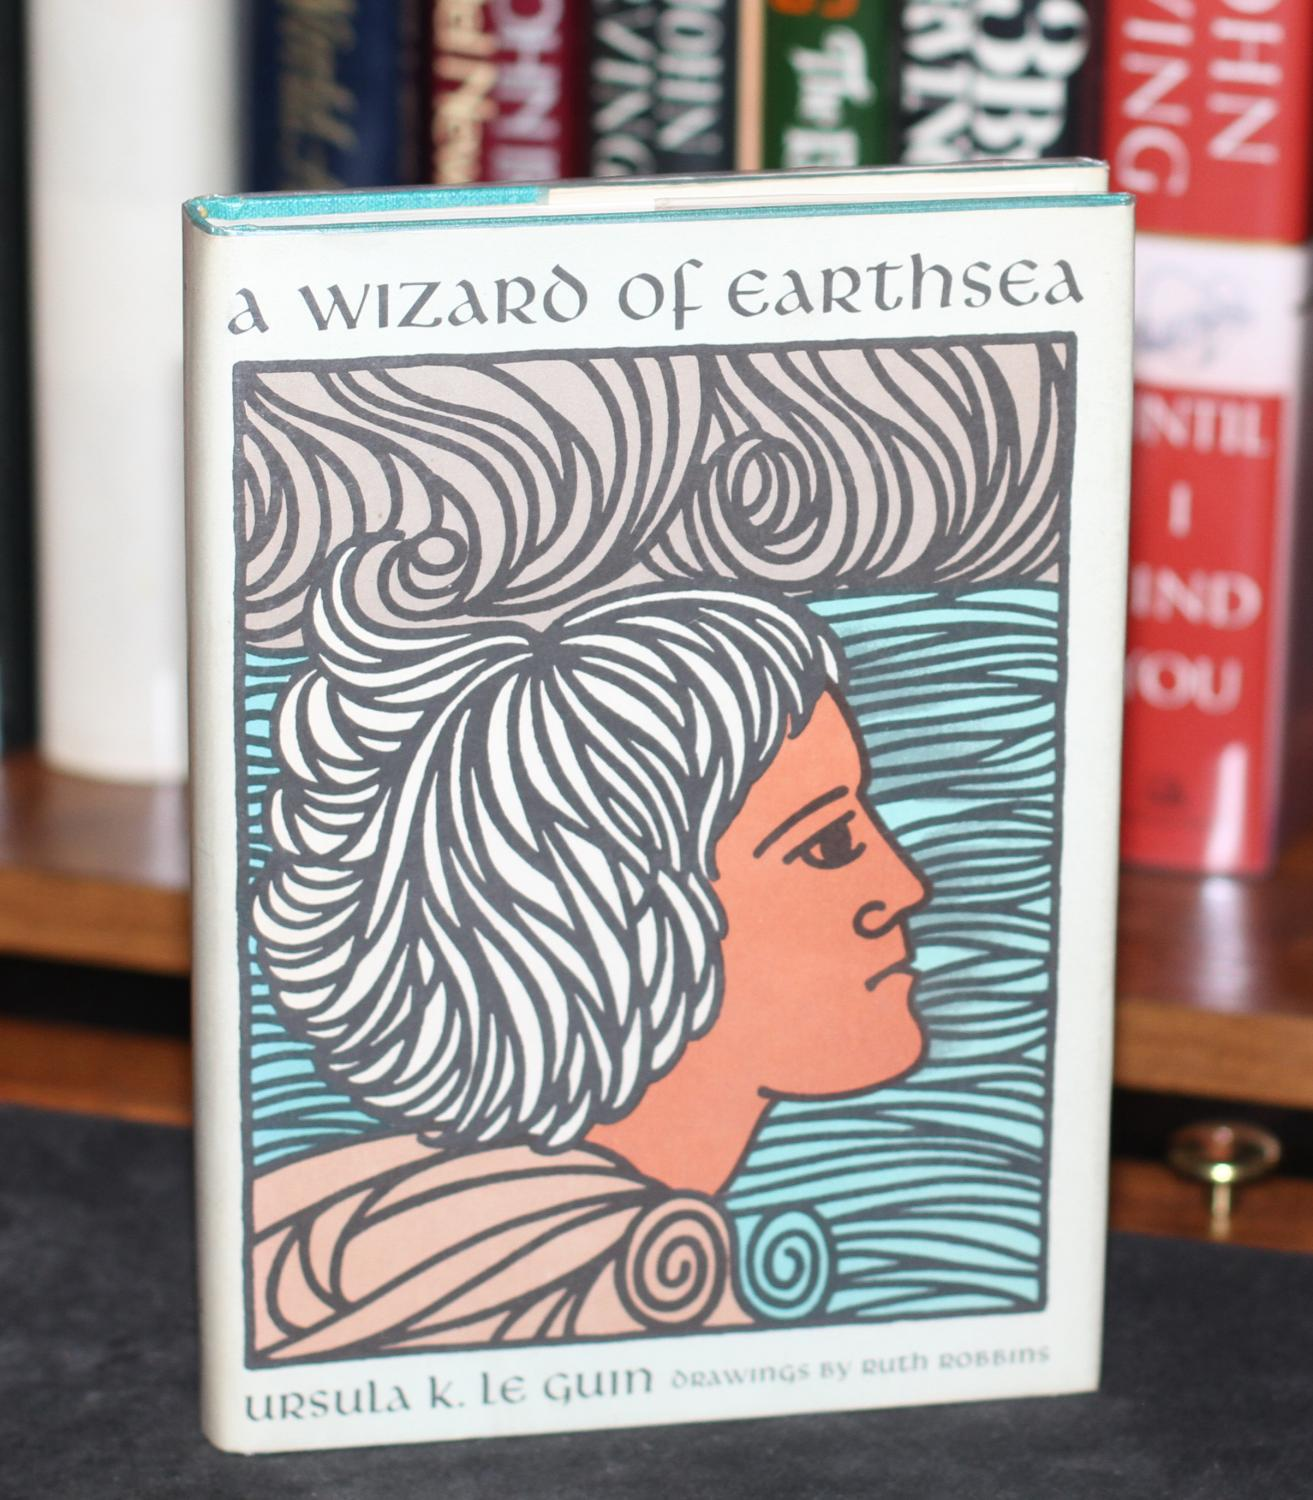 geds journey through magic and life in the novel a wizard of earthsea Jk rowlings beloved characters are taking to the stage as adults in the cursed child but are fans ever ready for their childhood heroes to grow up resulting authors have their say anthony horowitz author of the alex rider series children shouldnt grow up, truly and.